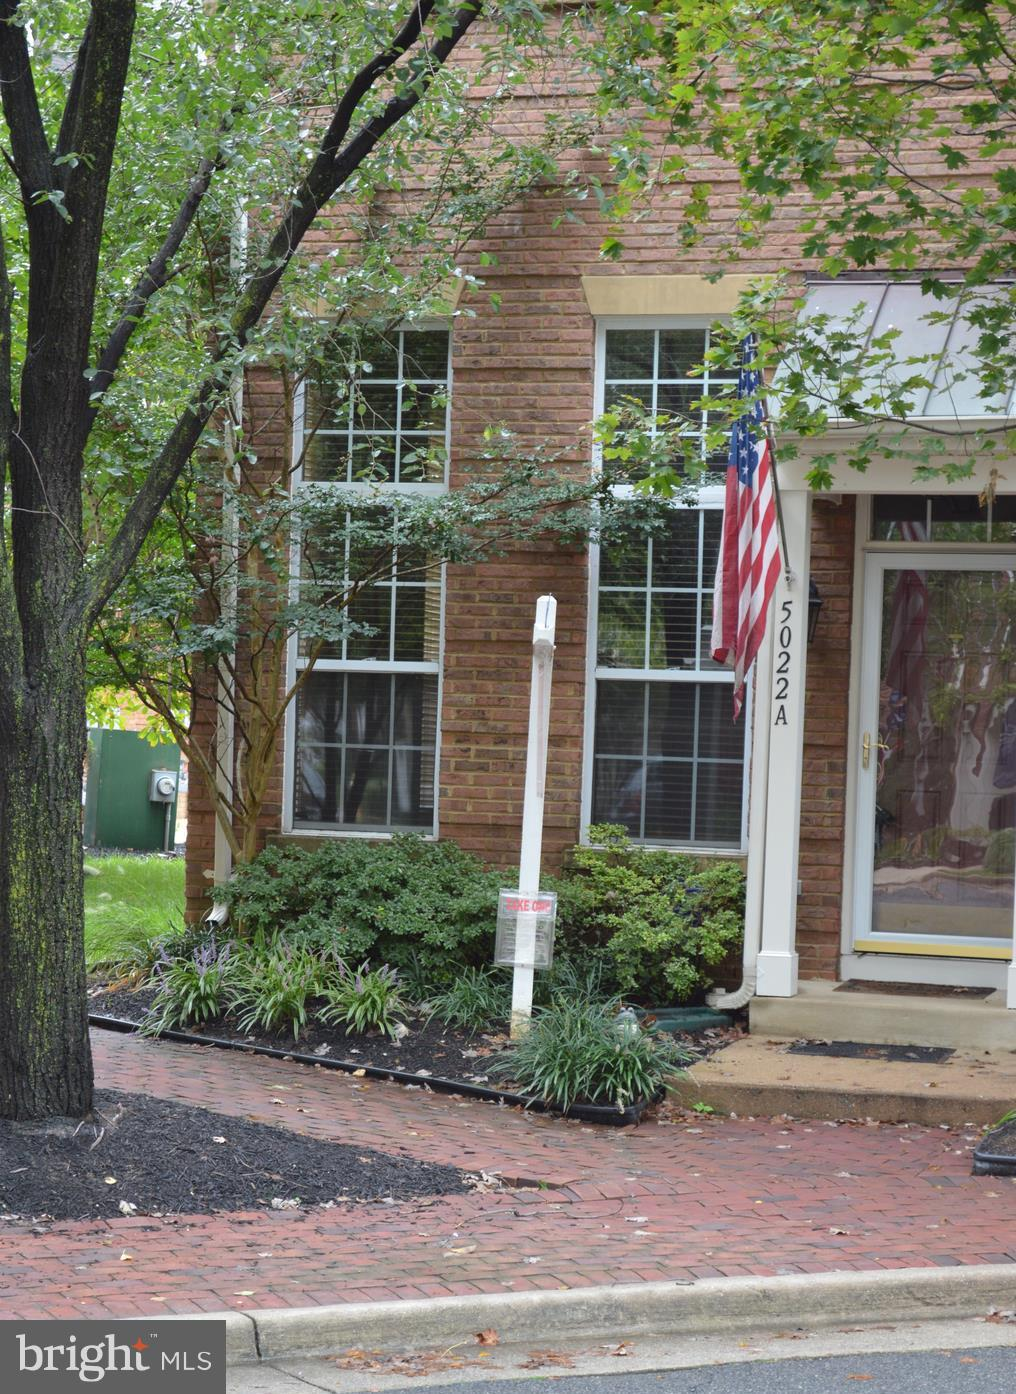 Vacant, END unit 2 story Townhouse. NEW HVAC & water heater installed 9/12/18. 2 bedrooms & 2 full baths up & 1/2 bath on main level with gas fireplace. NEW in 2013; Granit counters in Kitchen, Hardwoods, Carpet, paint throughout. One car garage & one extra assigned parking space. 1 mile to metro station. Near shopping, walk to Cameron coffee shop, fitness center, day care - pool, Brenman Park.